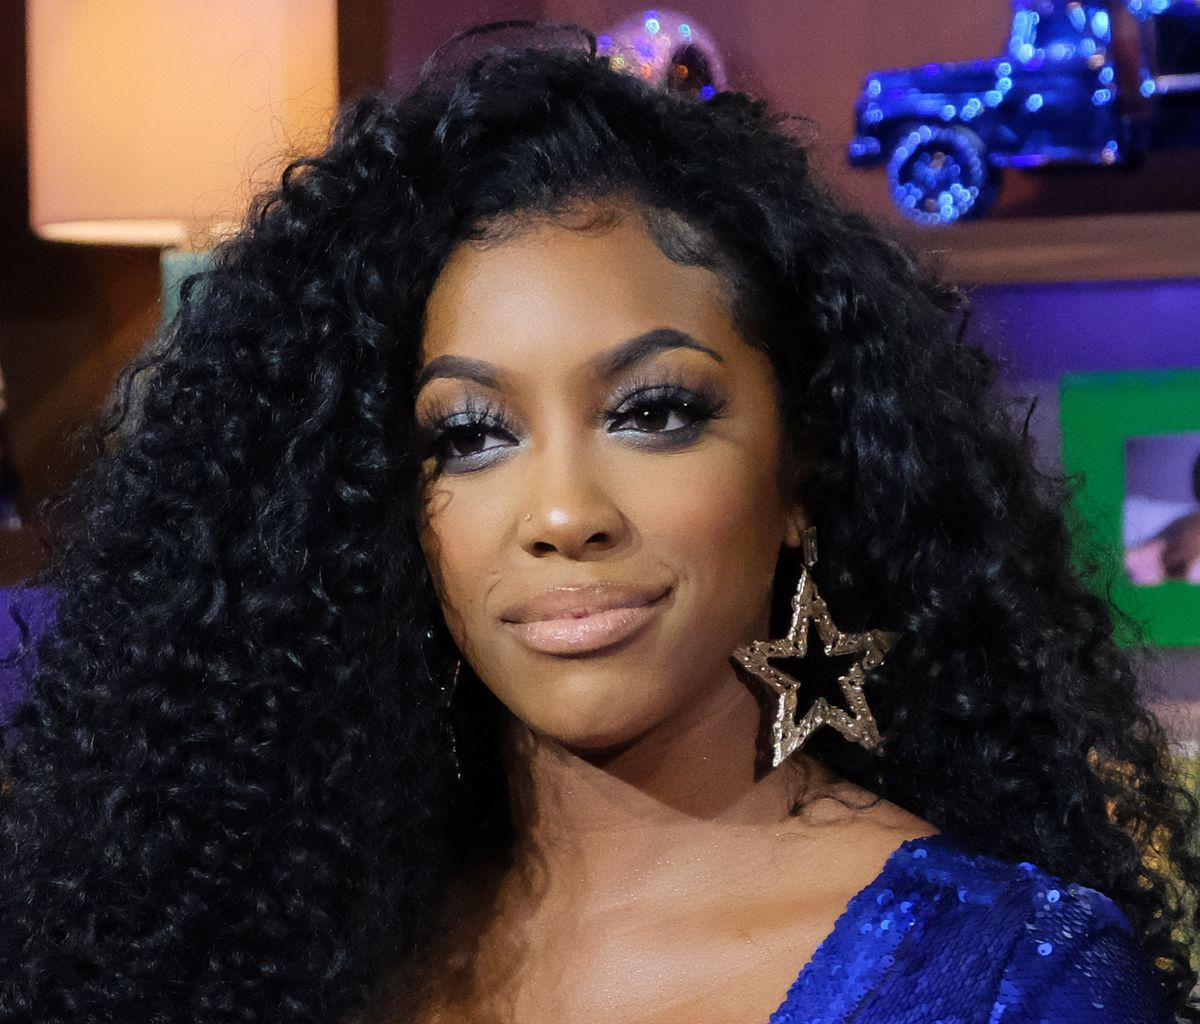 Porsha Williams Is Motivating Fans With These Exercises - See Her Video